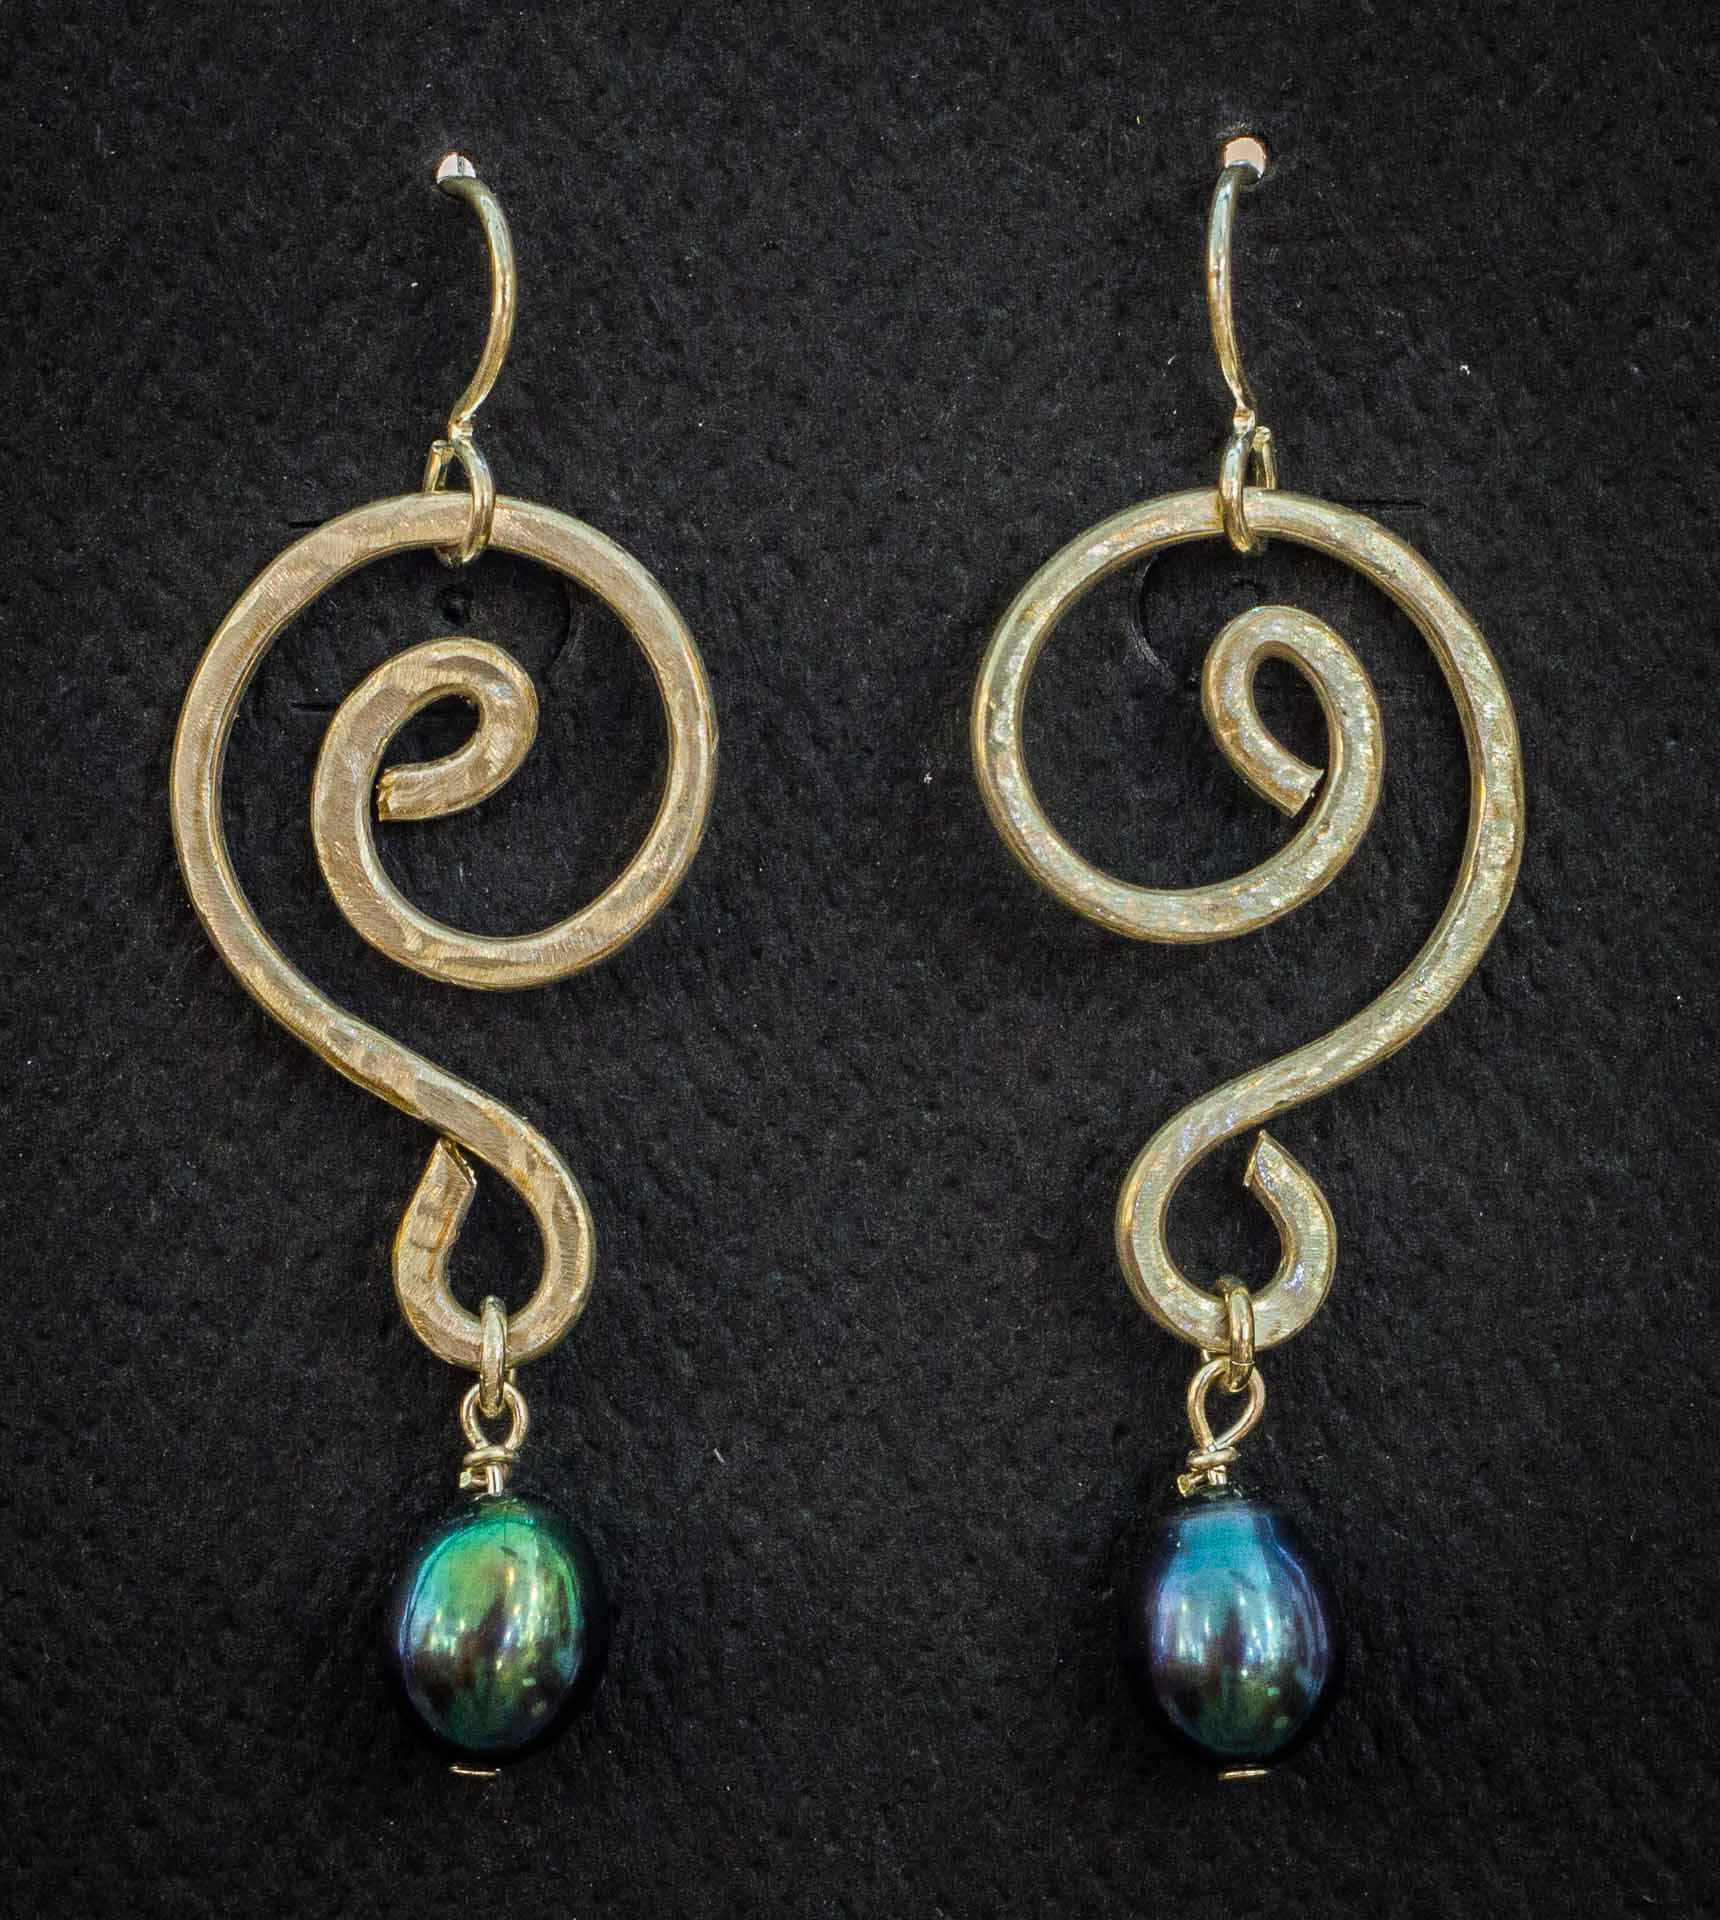 Earring pair 1 by Susie Hettleman